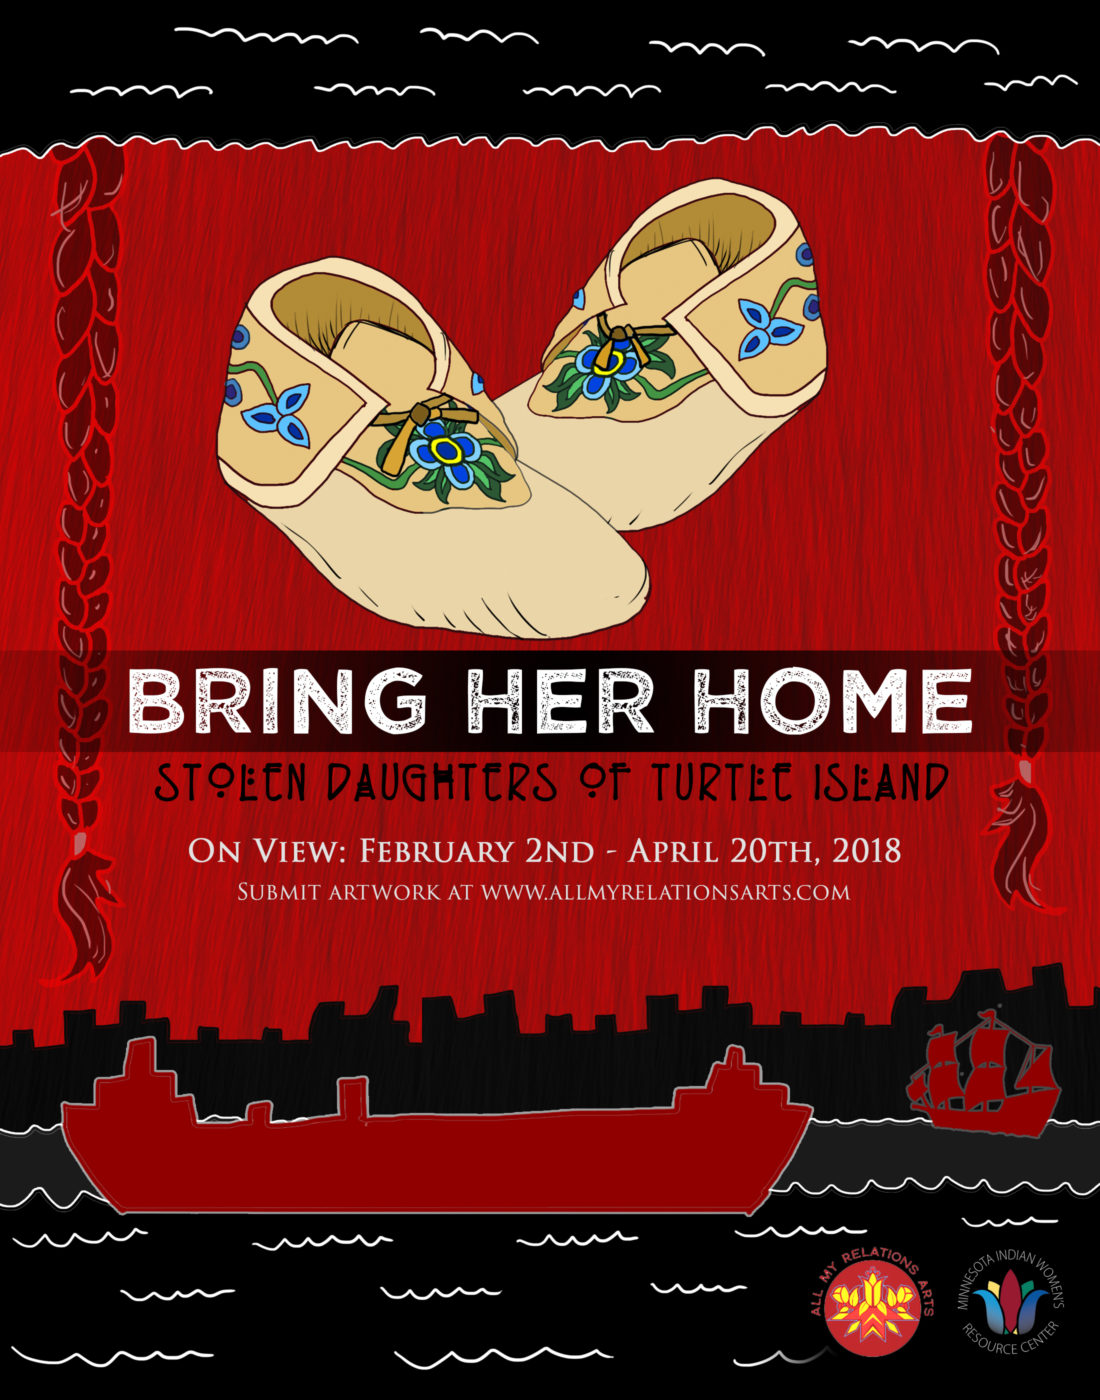 All My Relations Arts | Bring Her Home: Stolen Daughters of